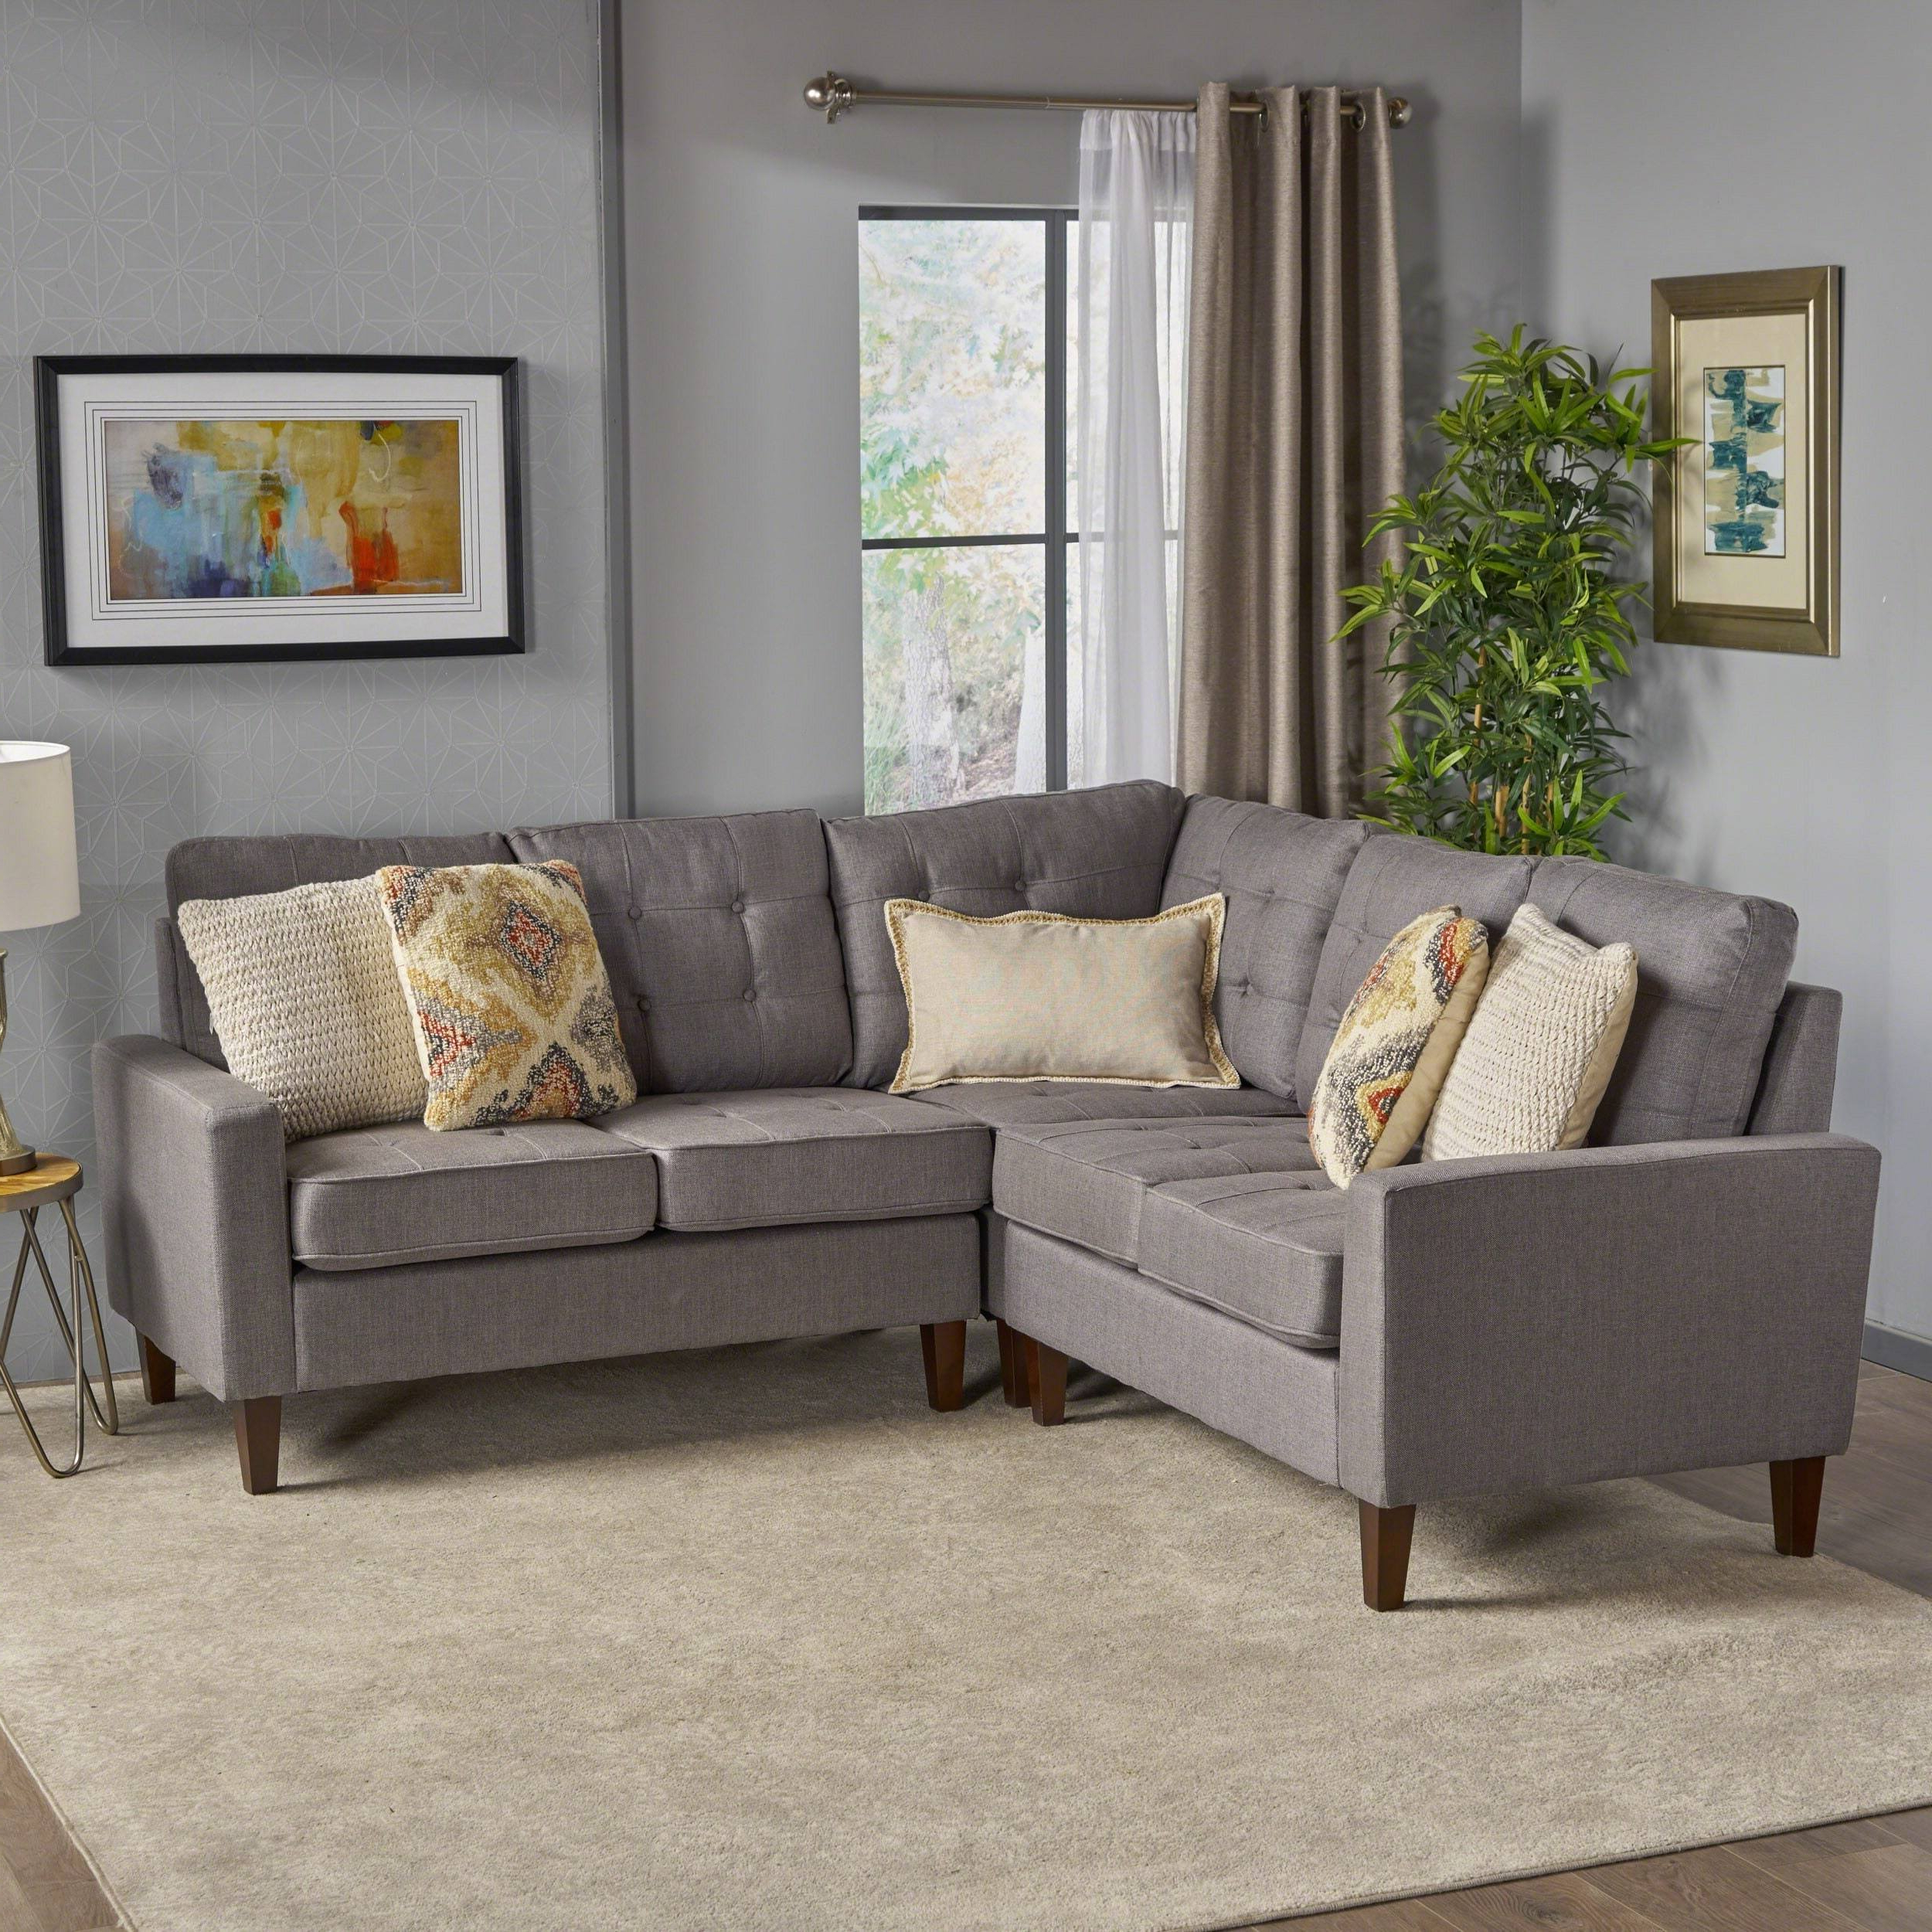 Popular 3 Piece Sectional Sofa (Gallery 16 of 20)